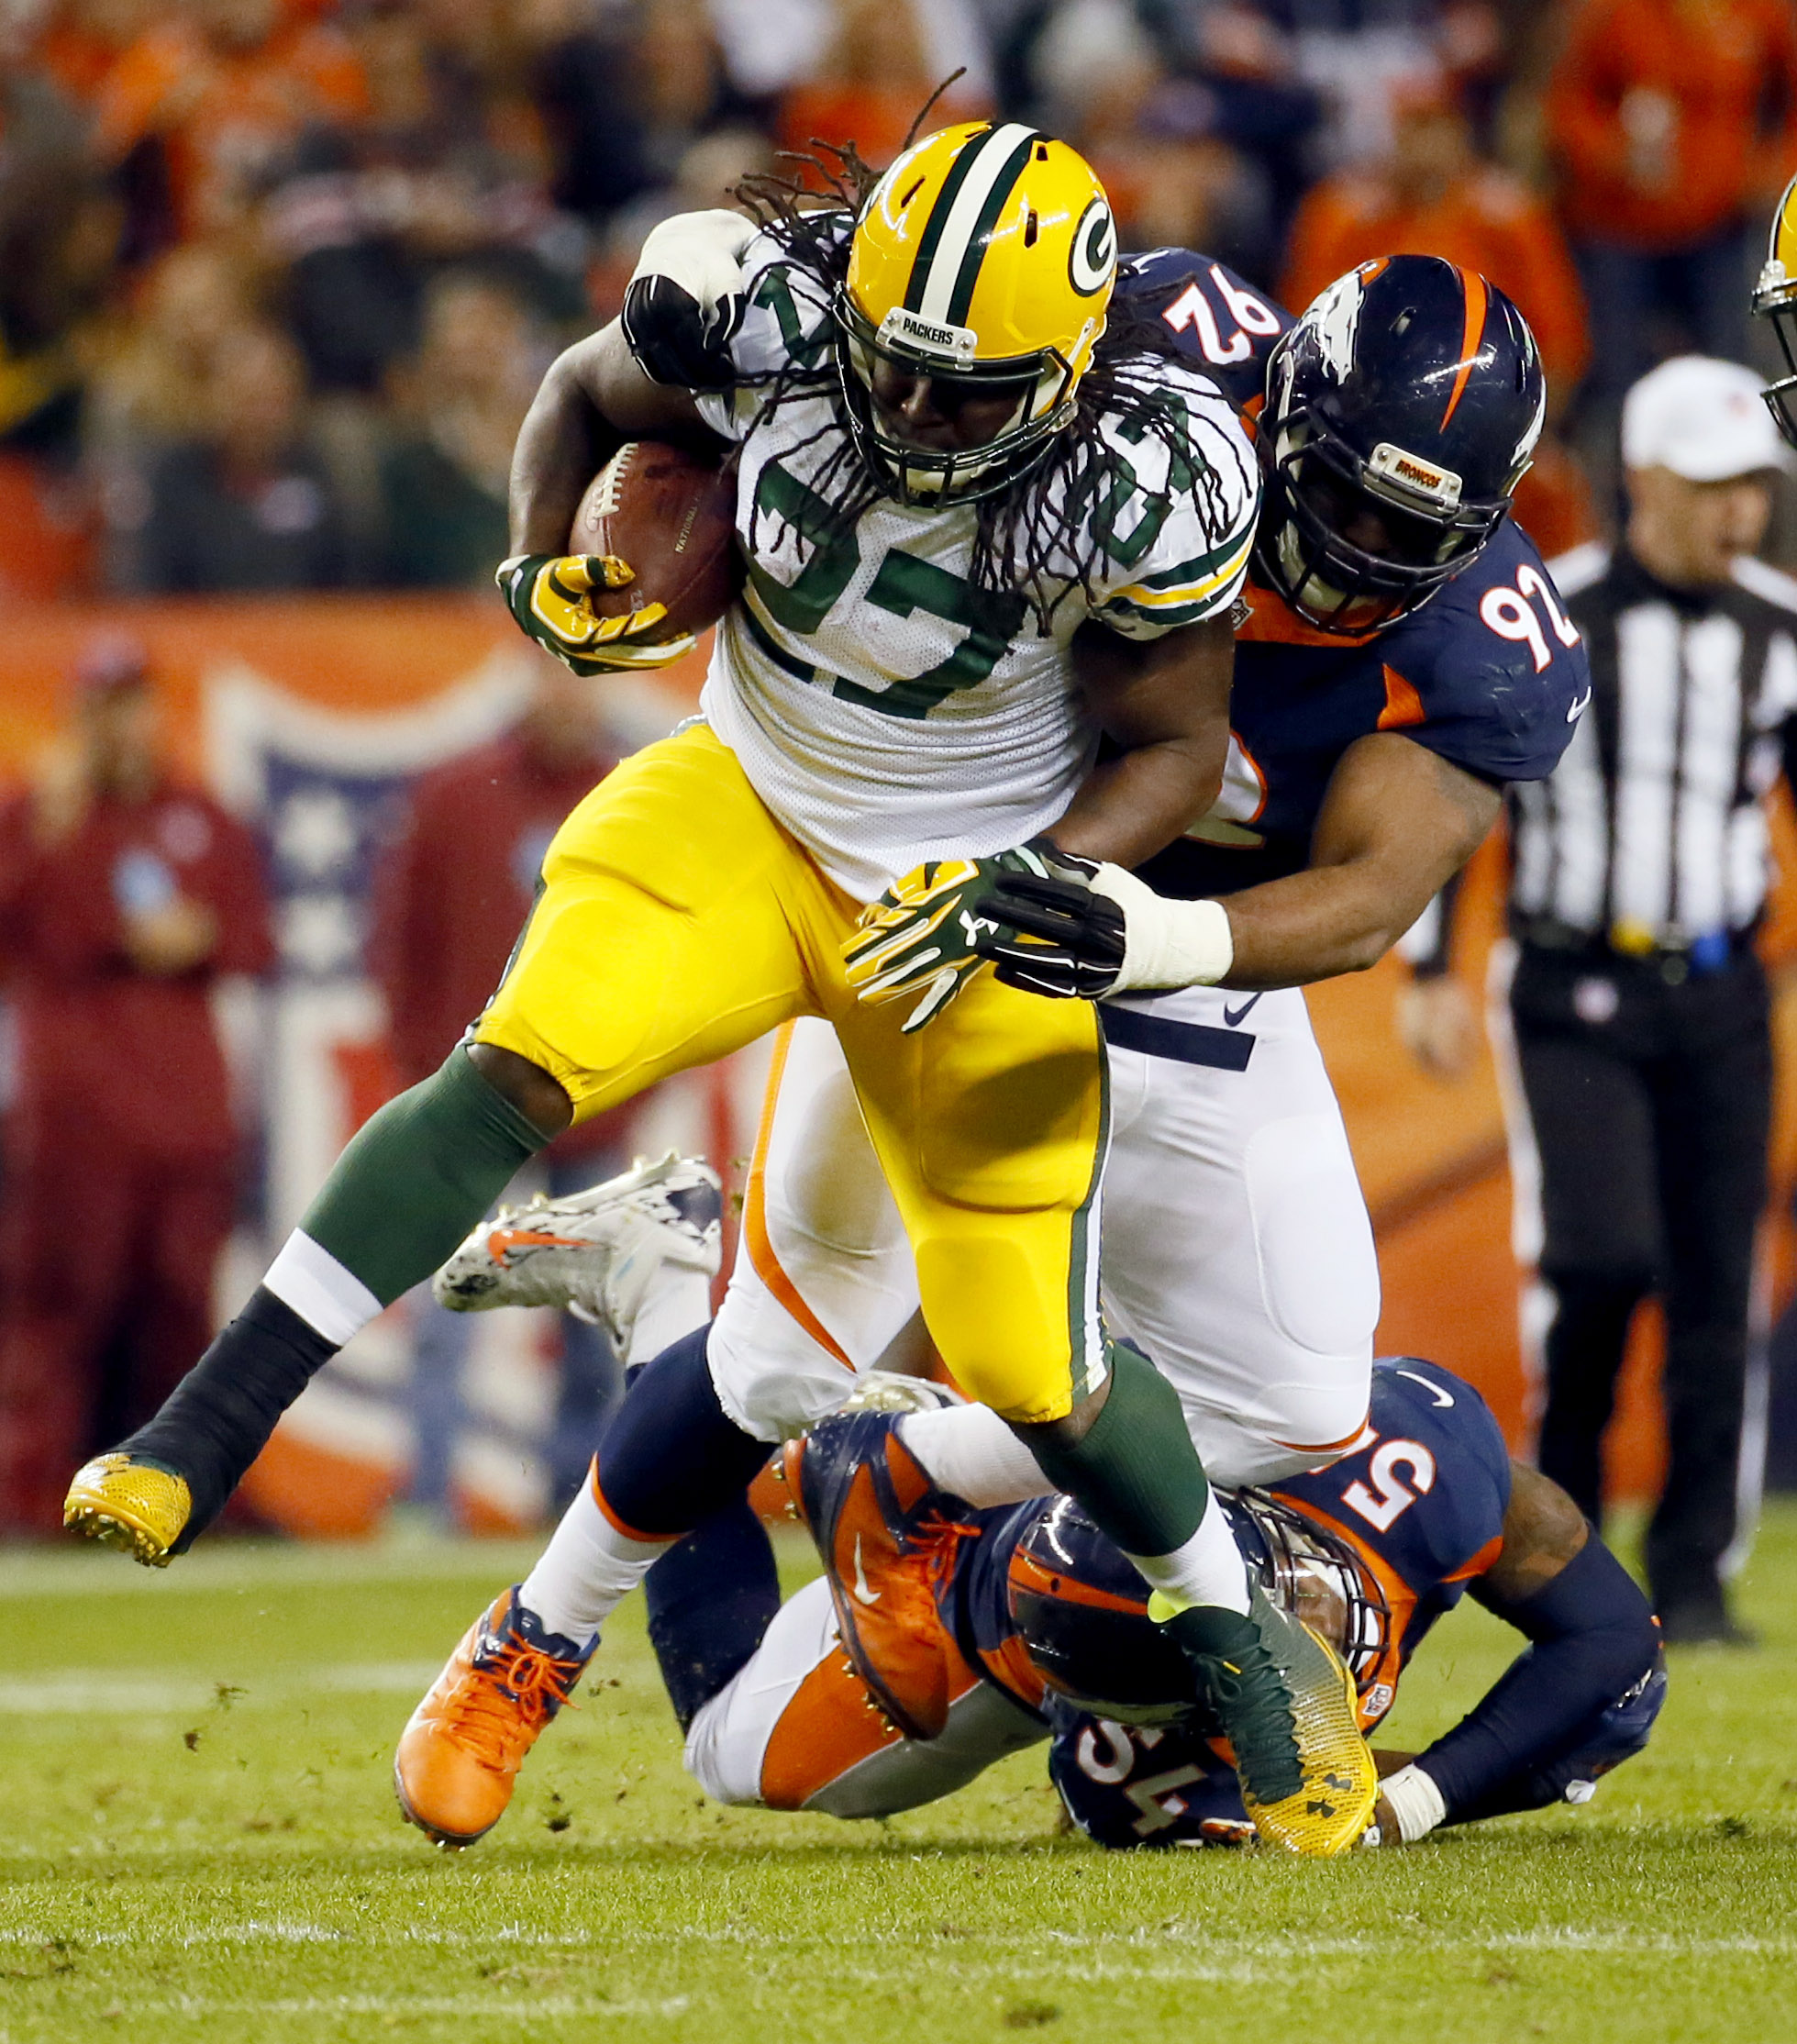 Green Bay Packers running back Eddie Lacy (27) is hit by Denver Broncos inside linebacker Brandon Marshall (54) and nose tackle Sylvester Williams (92) during the second half of an NFL football game, Sunday, Nov. 1, 2015, in Denver. (AP Photo/Jack Dempsey